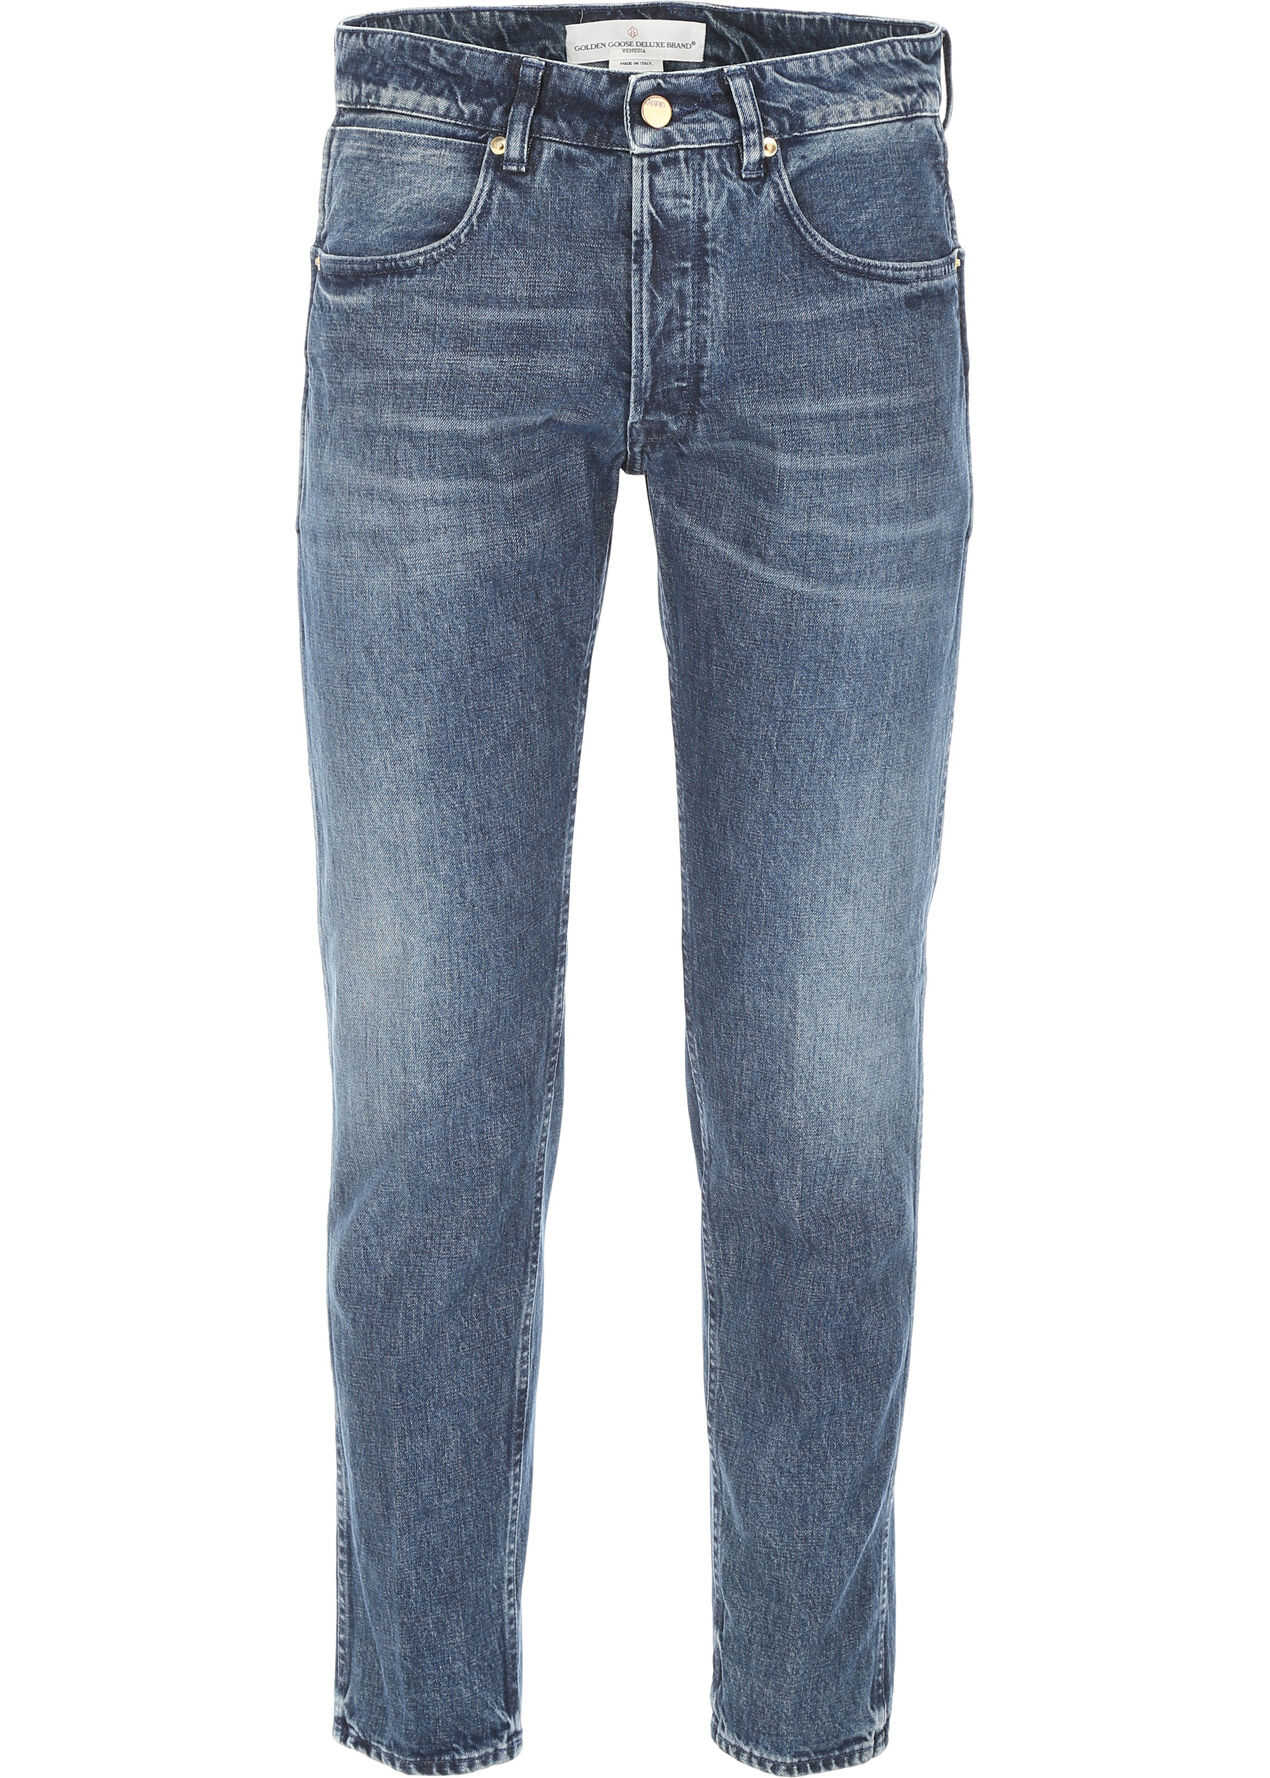 Golden Goose Five Pockets Jeans DARK BLUE WASH